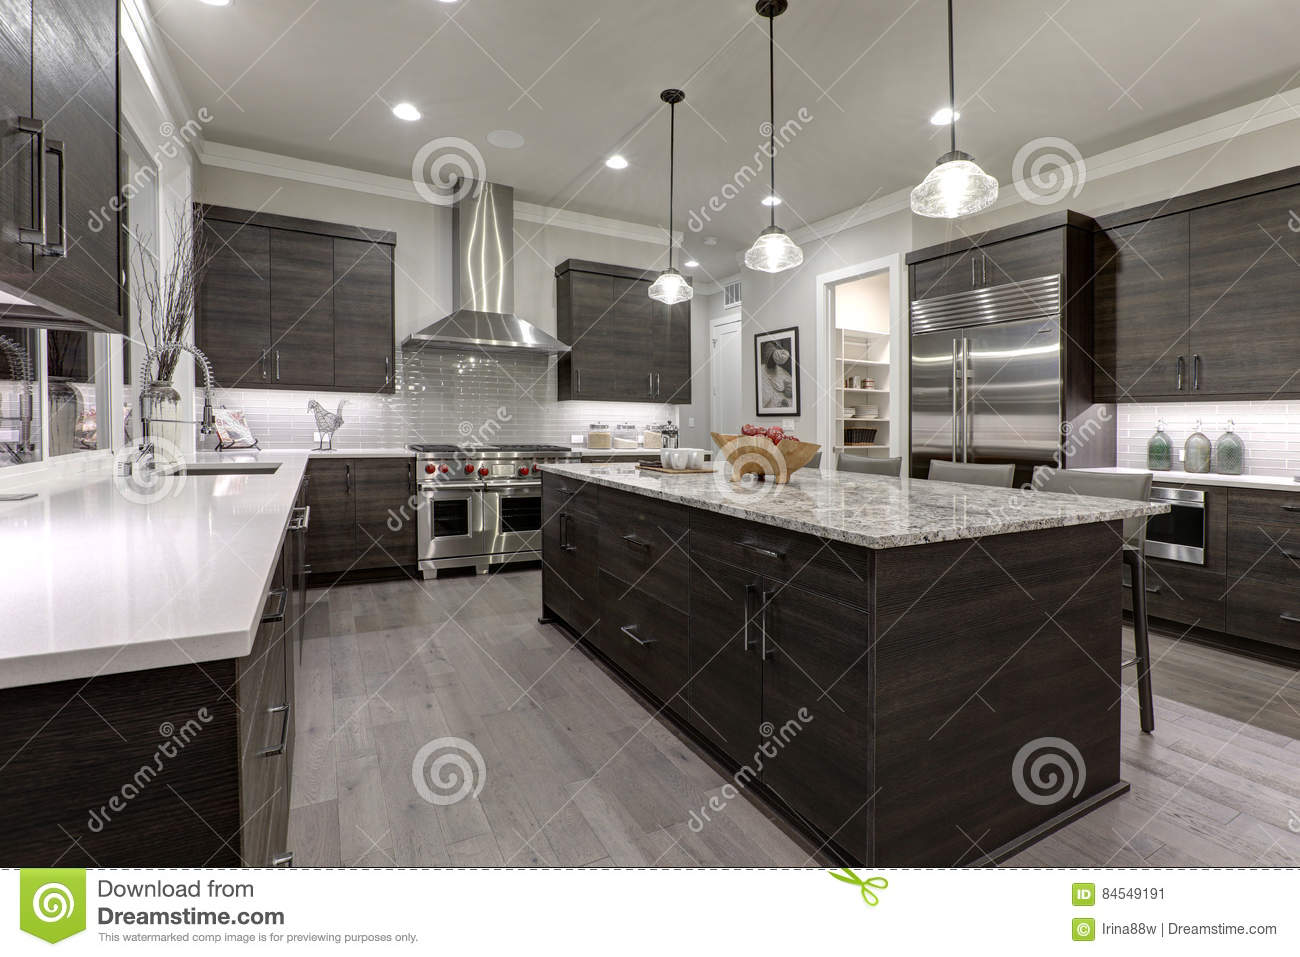 laundry countertops architects designers landscape restoration dining home farmhouse building garage design bath quartz medium dark contractors decks doors compact wallpaper cottage outdoor lighting gym southwestern electrical